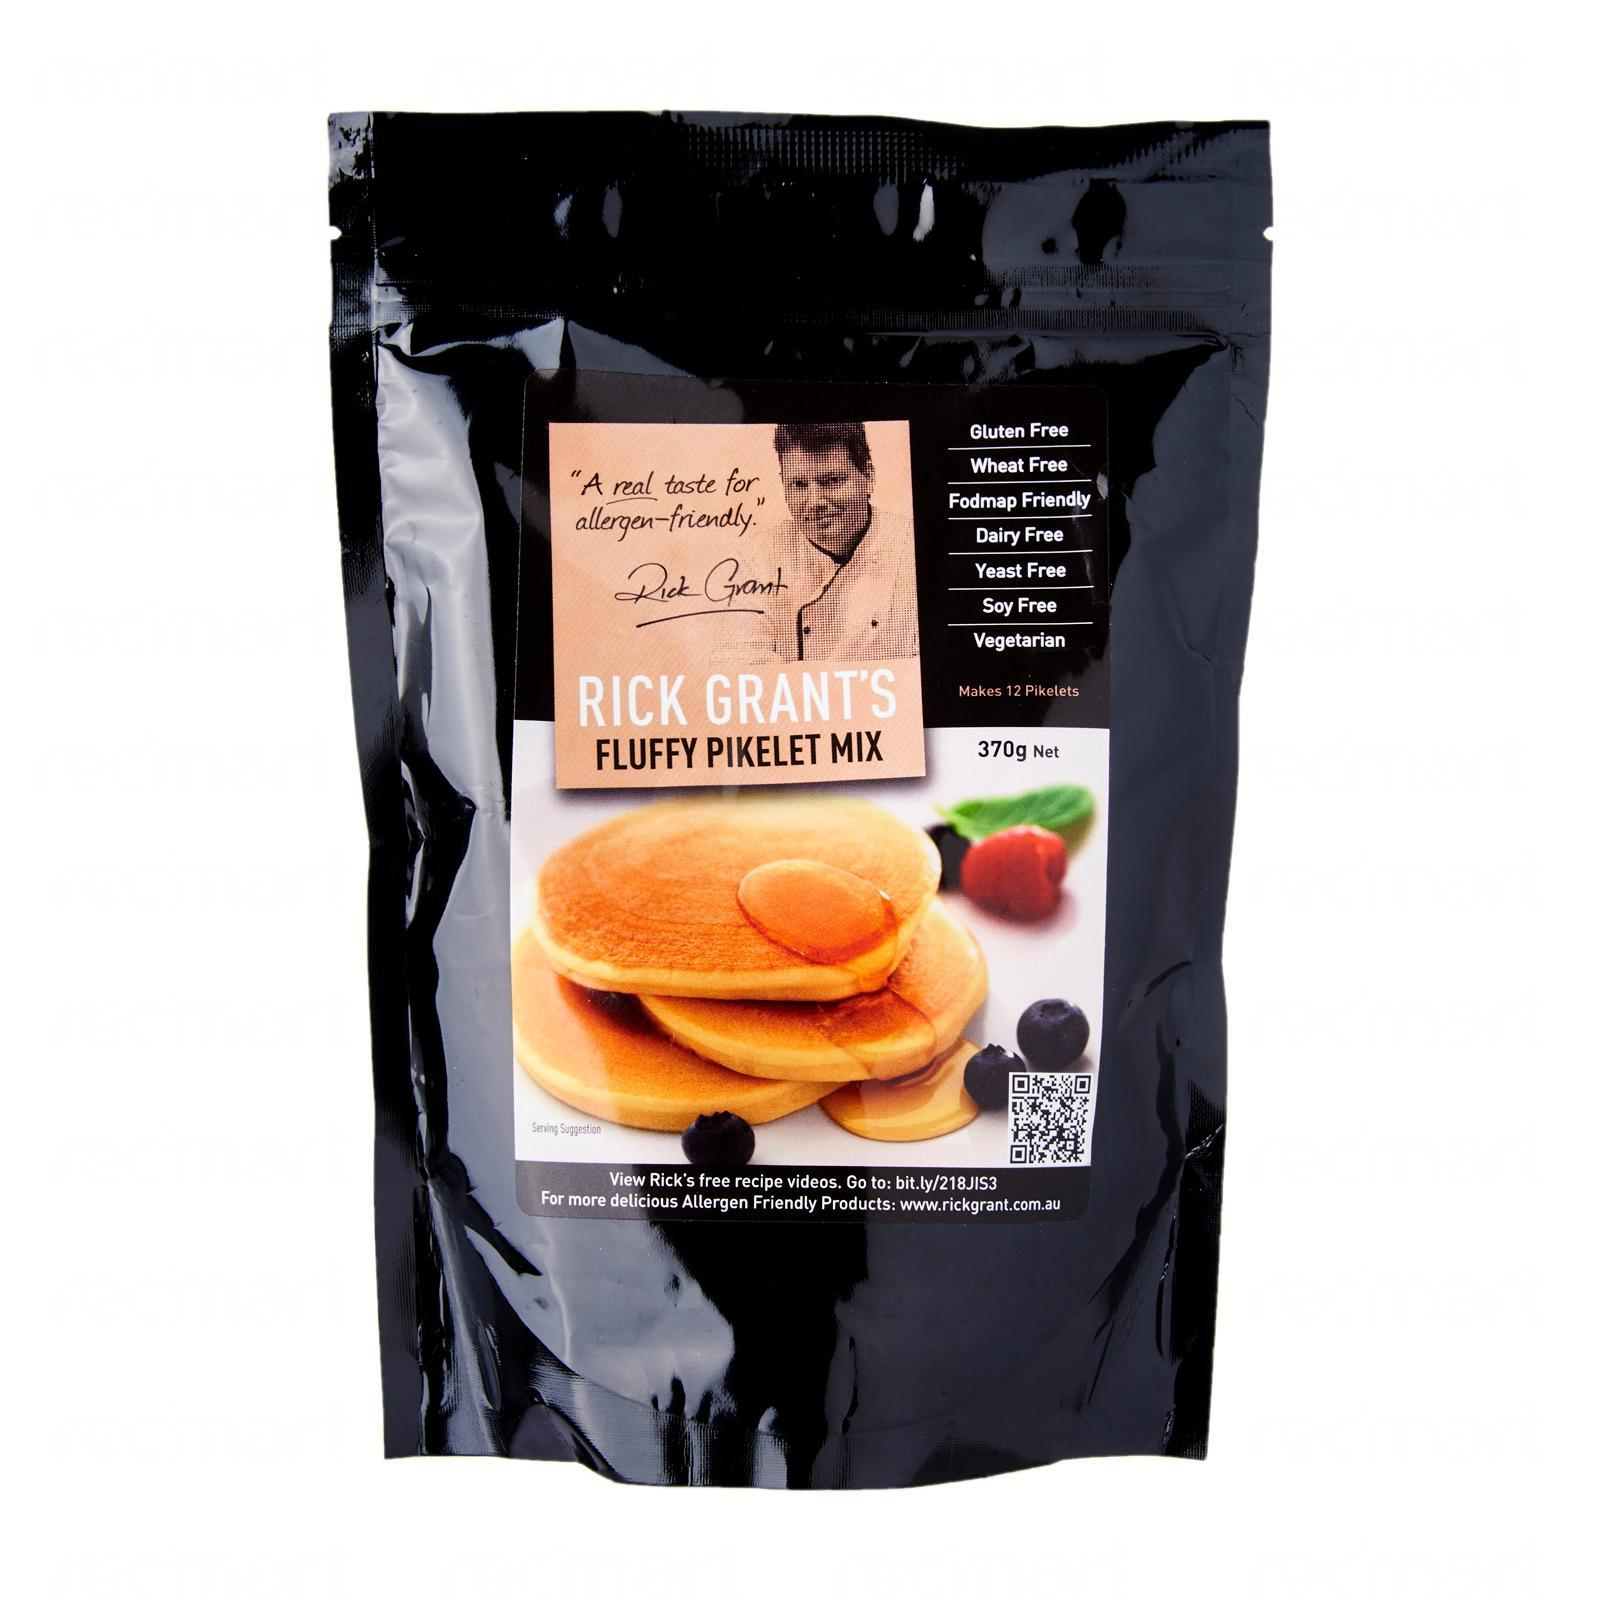 Rick Grant's Fluffy Pikelet Mix